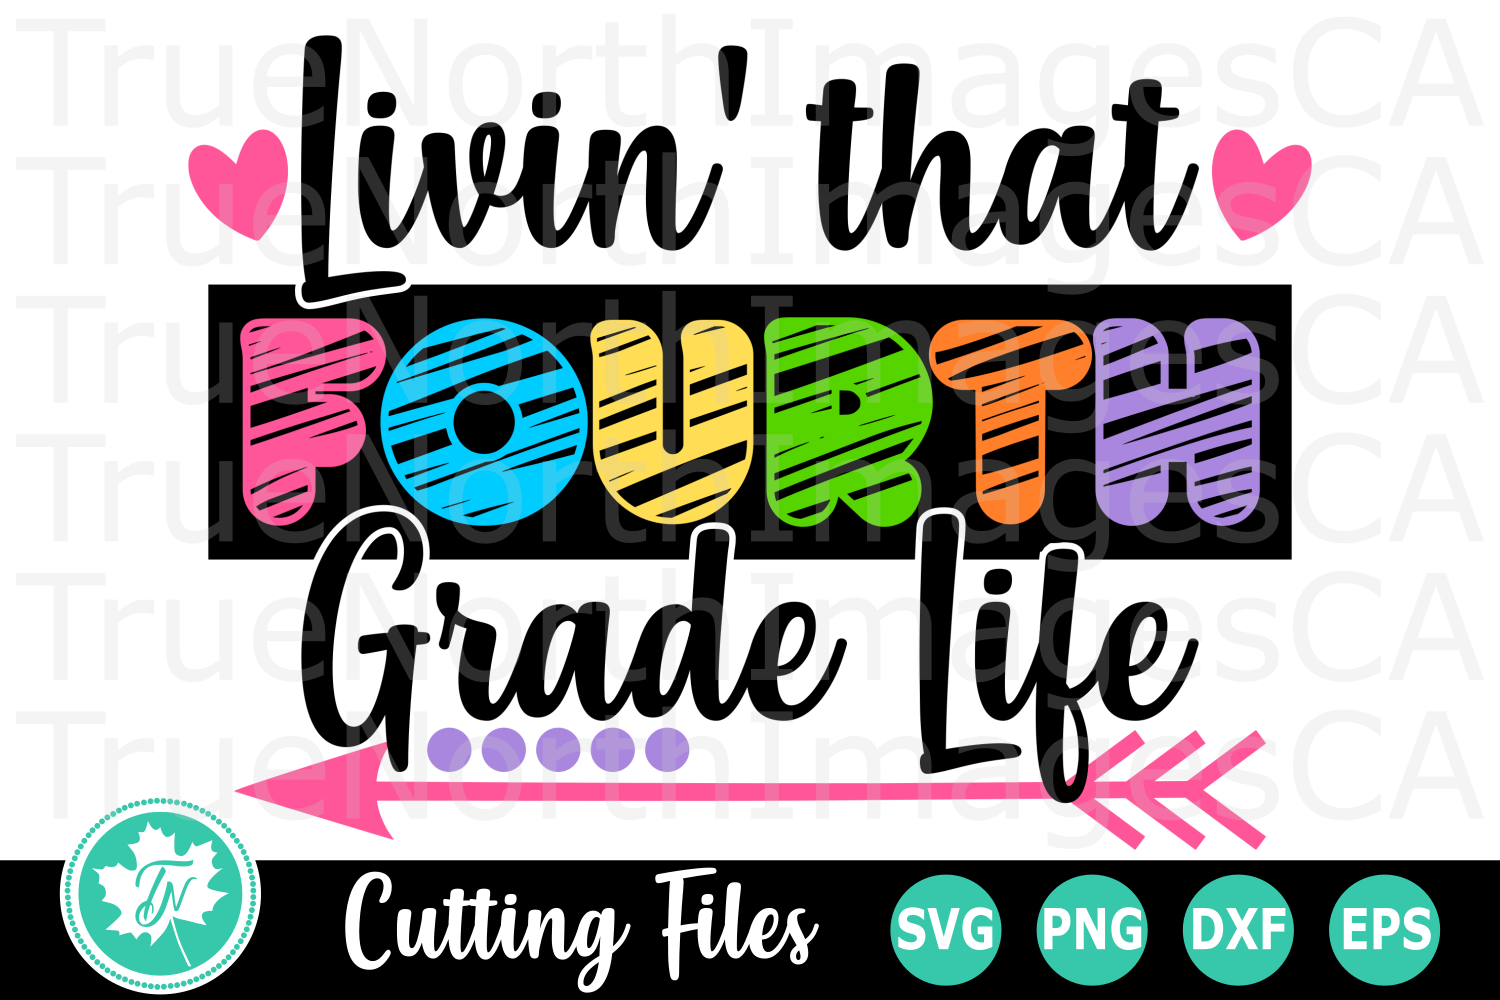 Livin' that School Life - A School SVG Bundle example image 5